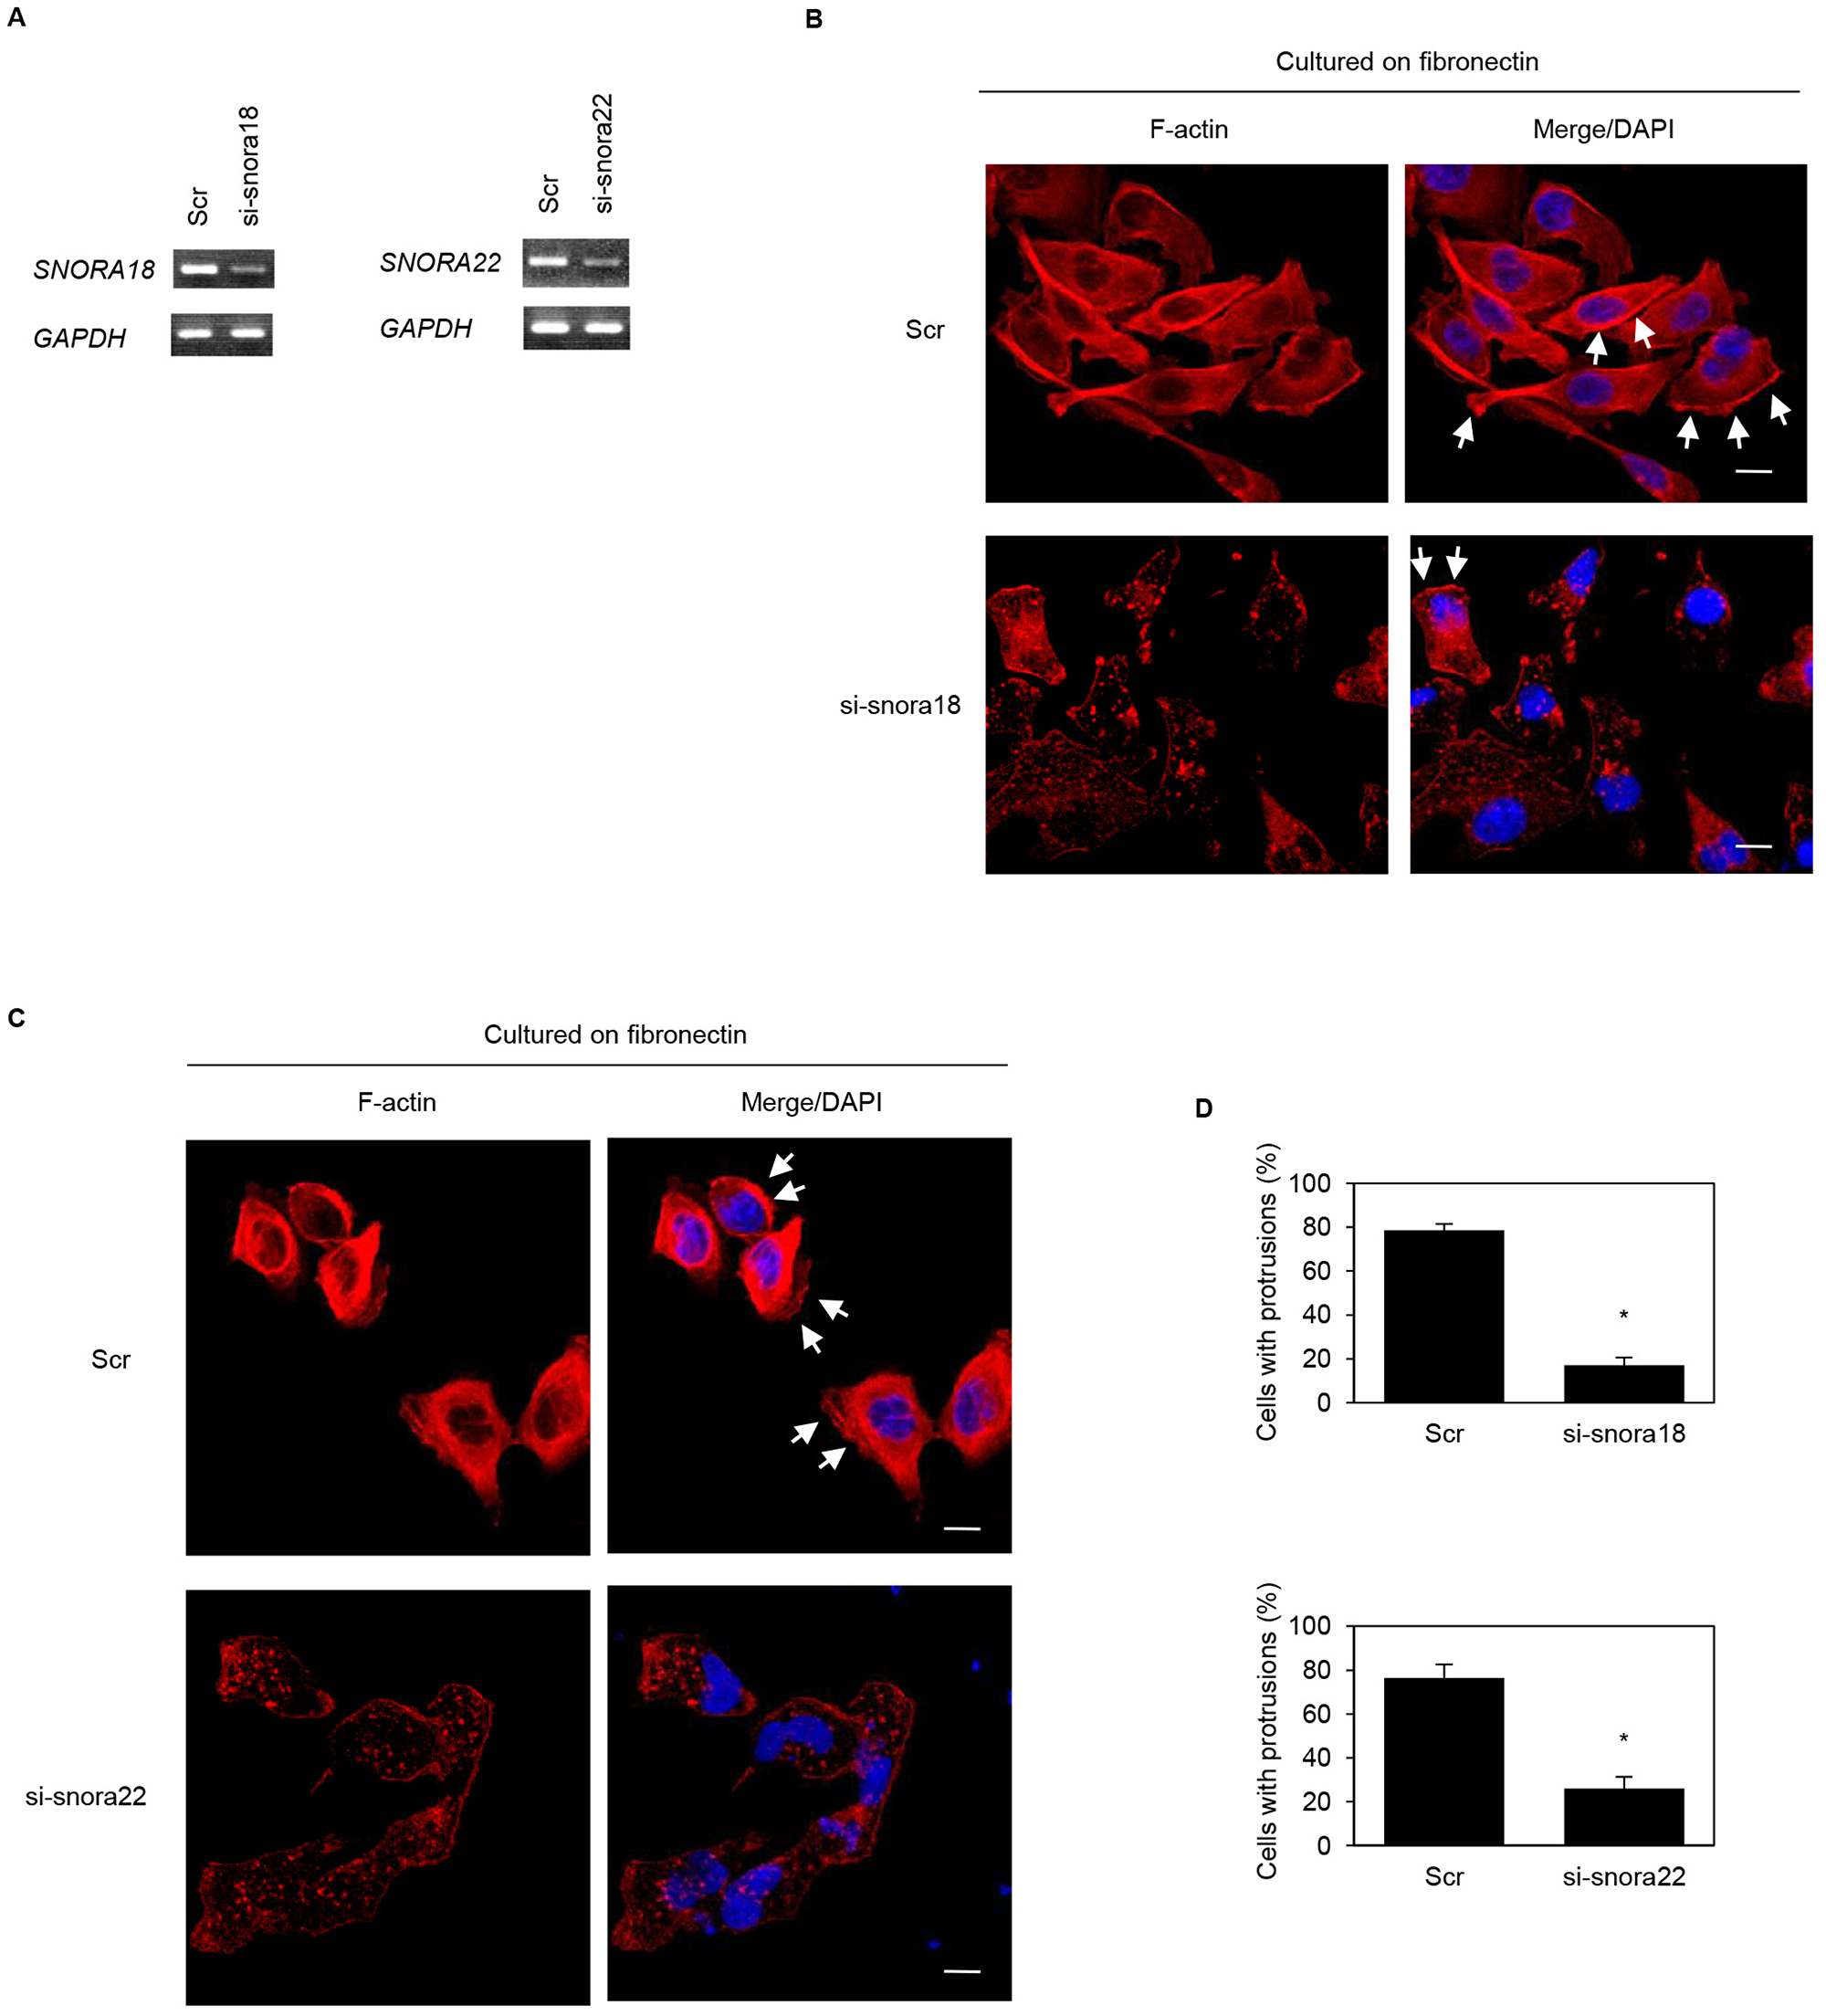 Roles of KHSRP-bound snoRNAs in forming cell protrusions in S2-013 cells.